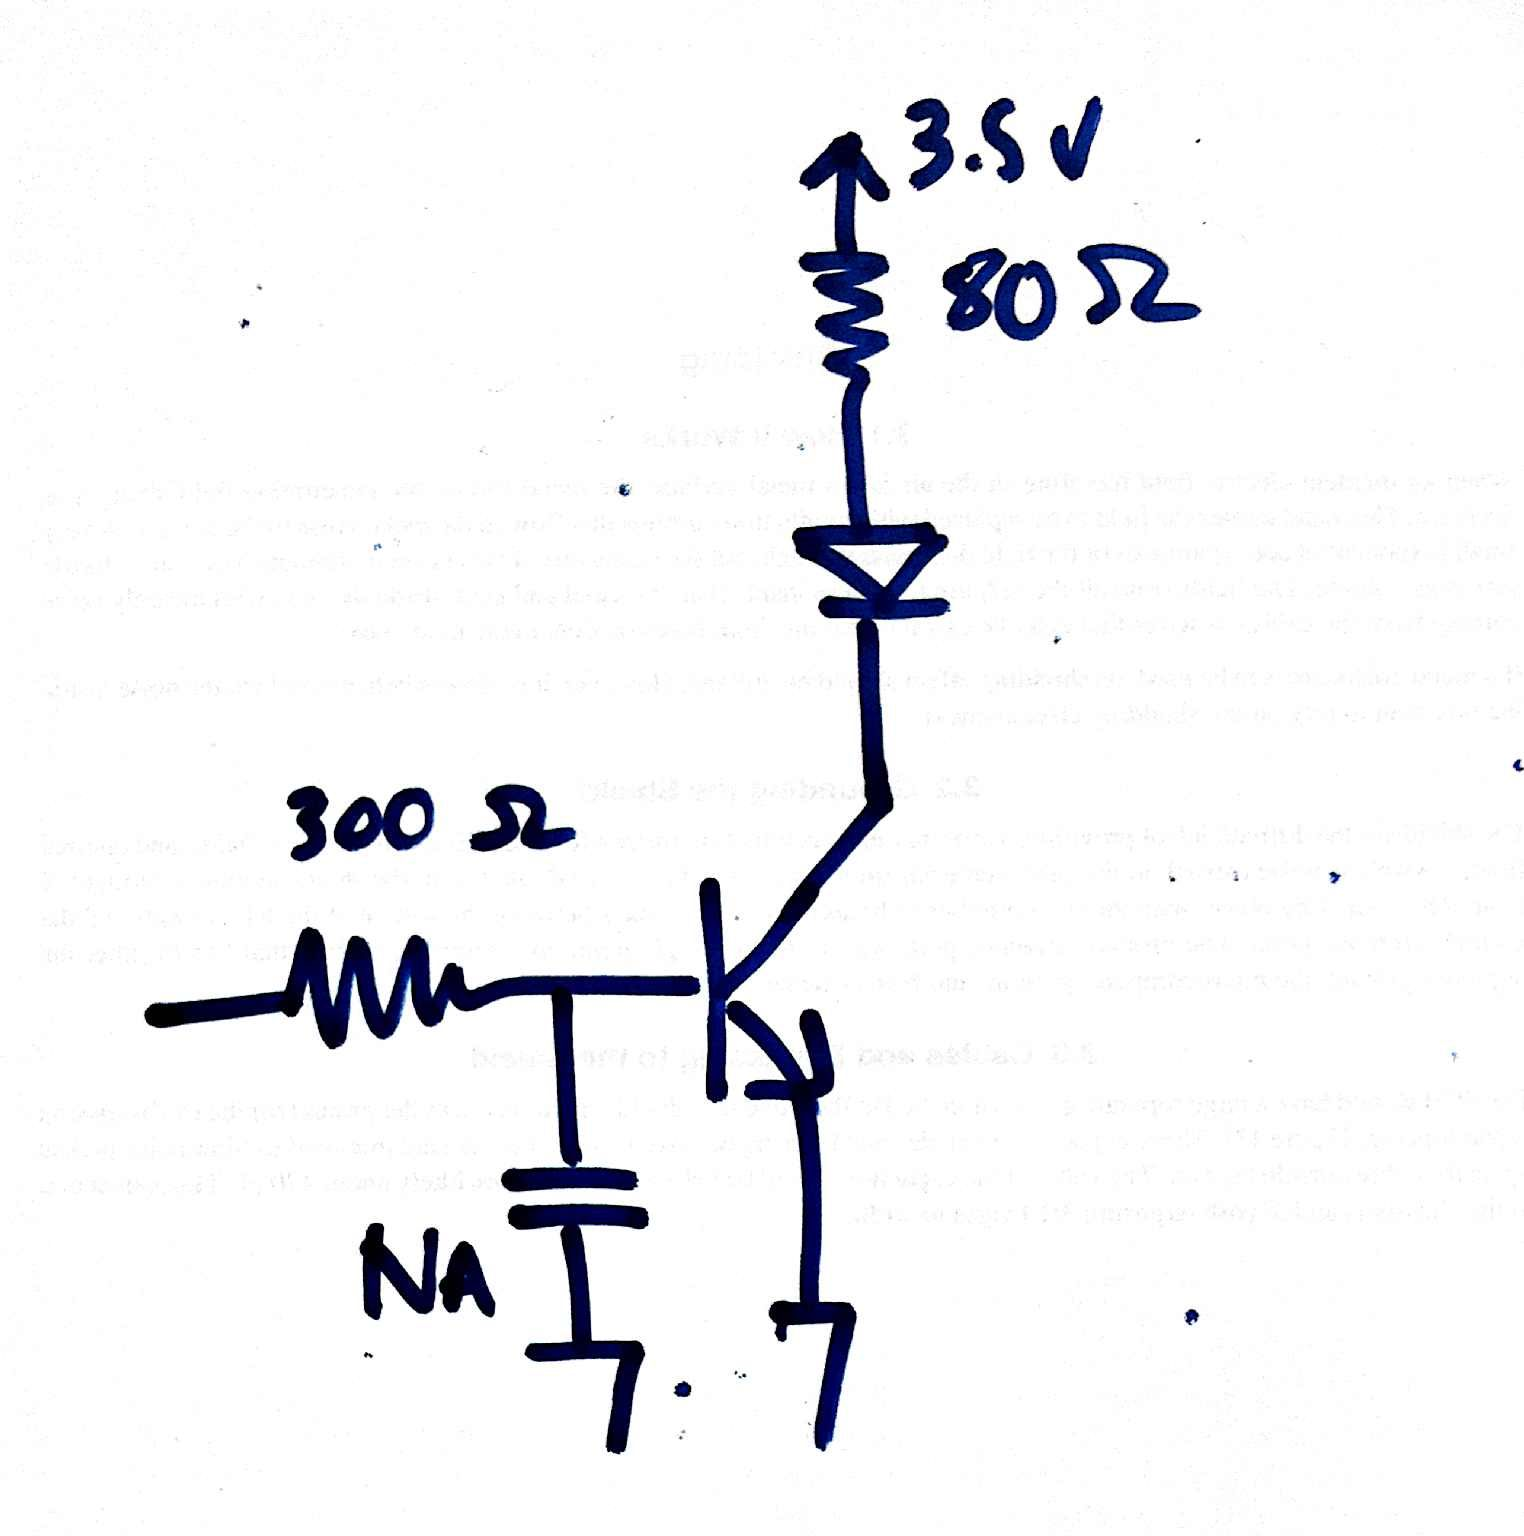 hight resolution of schematic showing a simple npn switching circuit